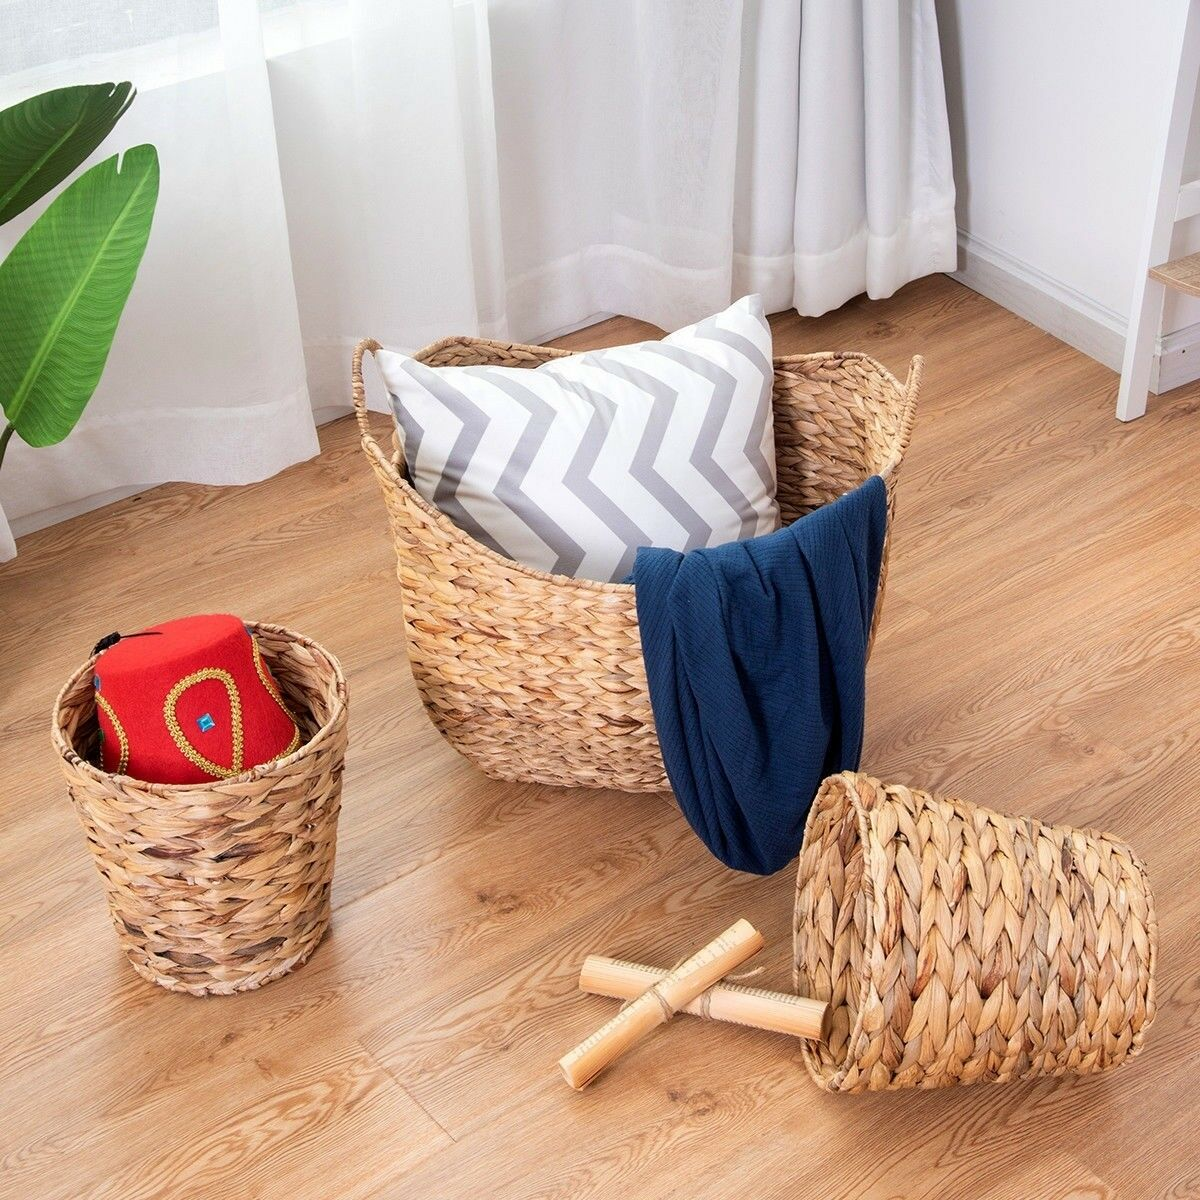 Large Woven Seagrass Laundry Basket N Two Waste Baskets For Toys Clothes Storage